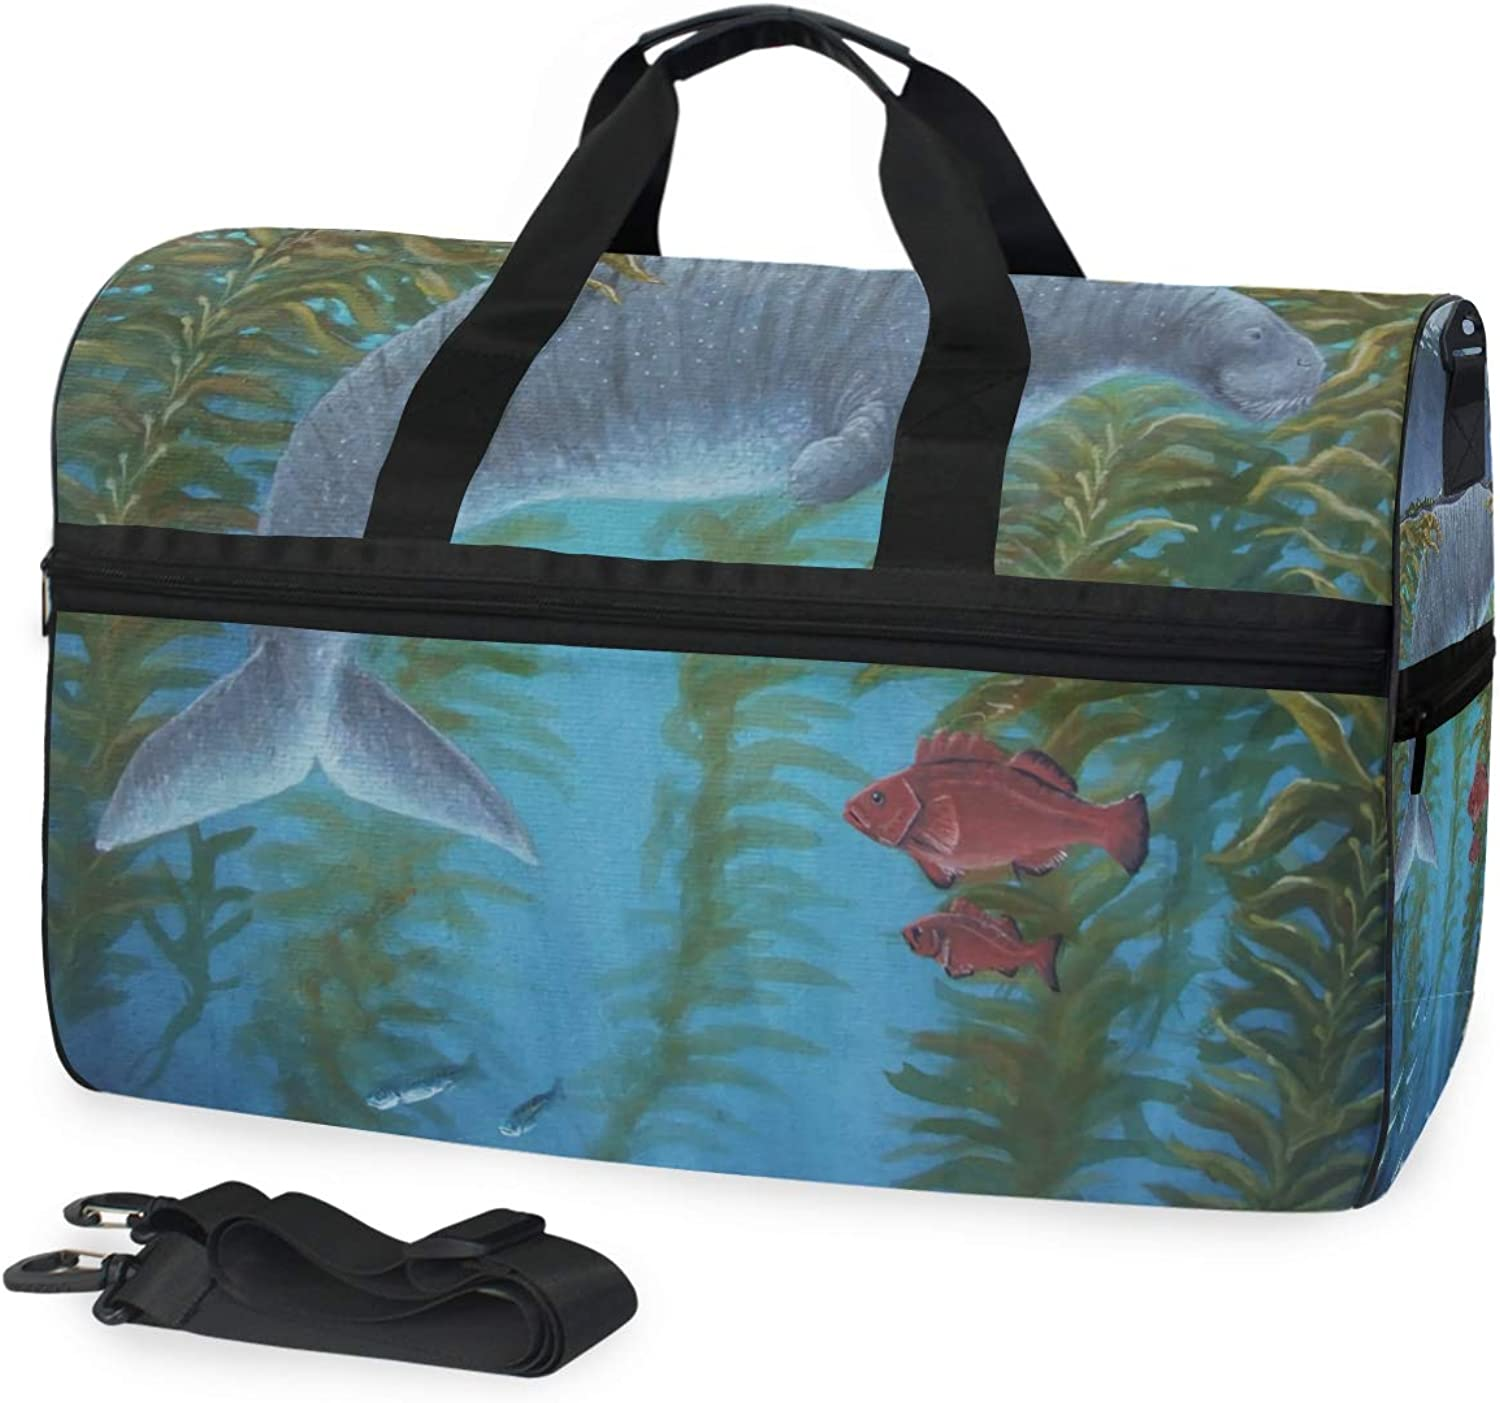 dd37cfa966d8 DEZIRO 45L Travel Duffel Bag Cool Sea Cow Red Fishes Large Weekender ...